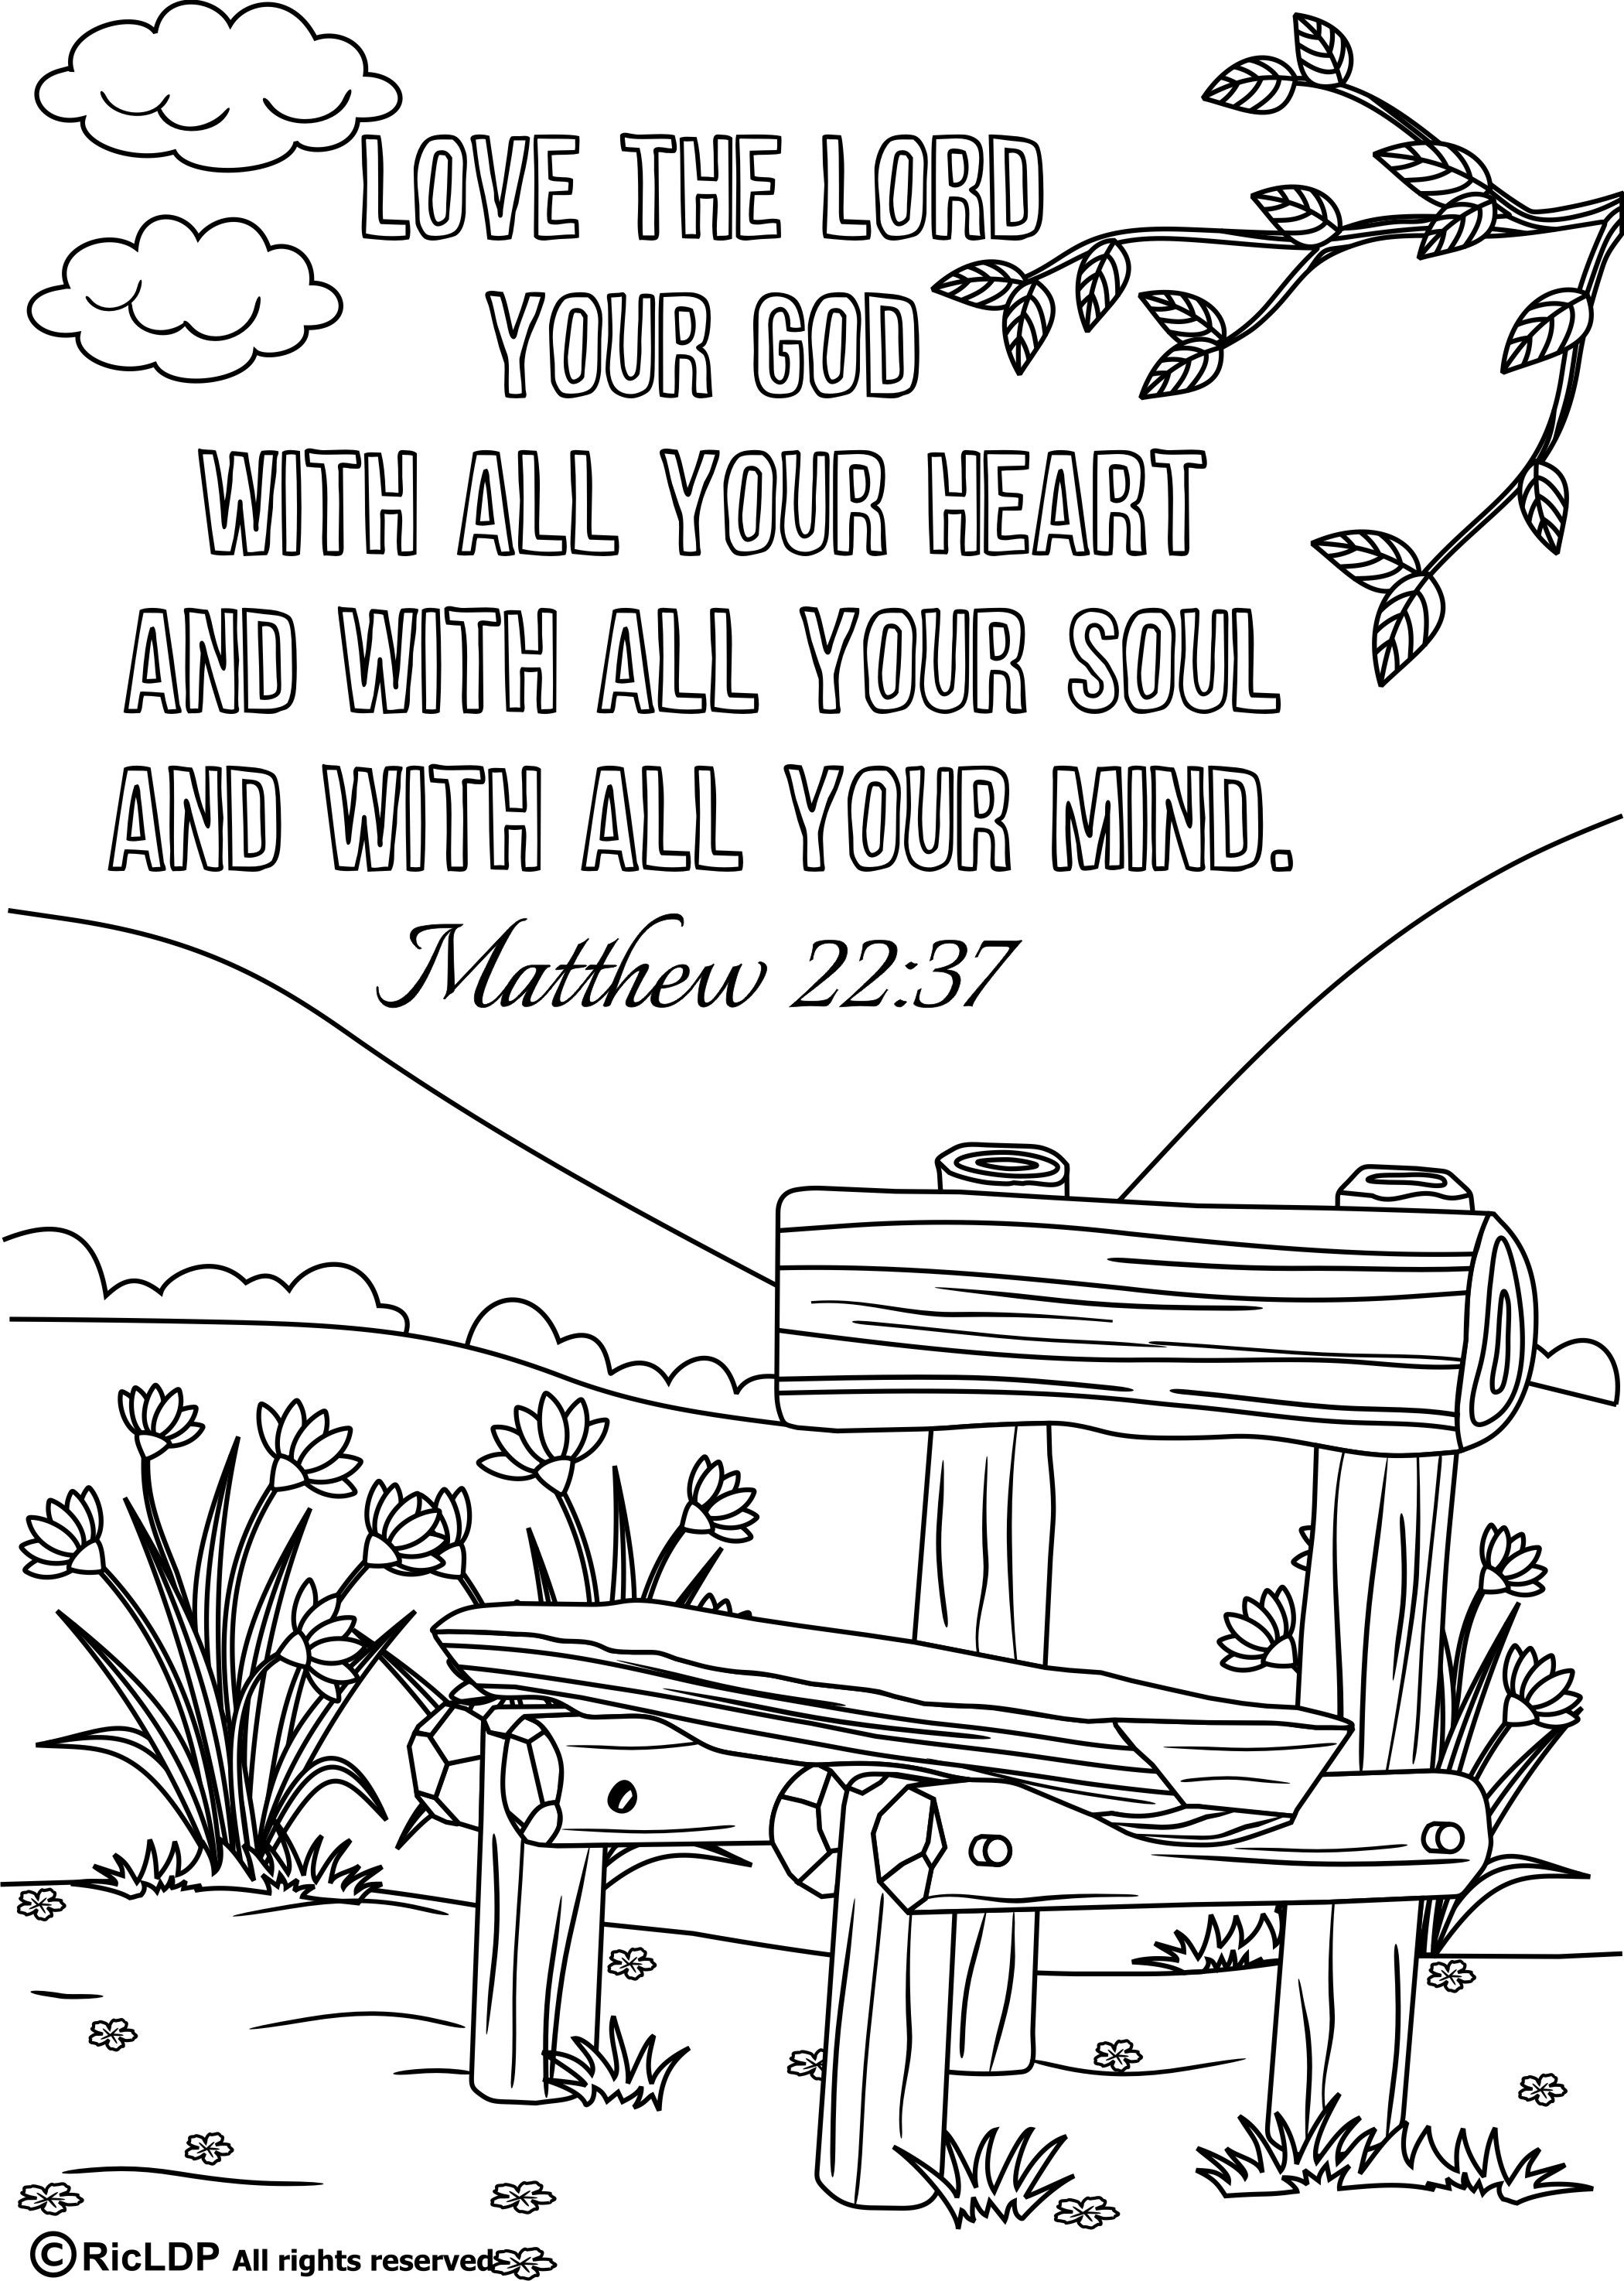 bible coloring pages pdf 15 Bible Verses Coloring Pages | Christian Coloring Pages NT  bible coloring pages pdf